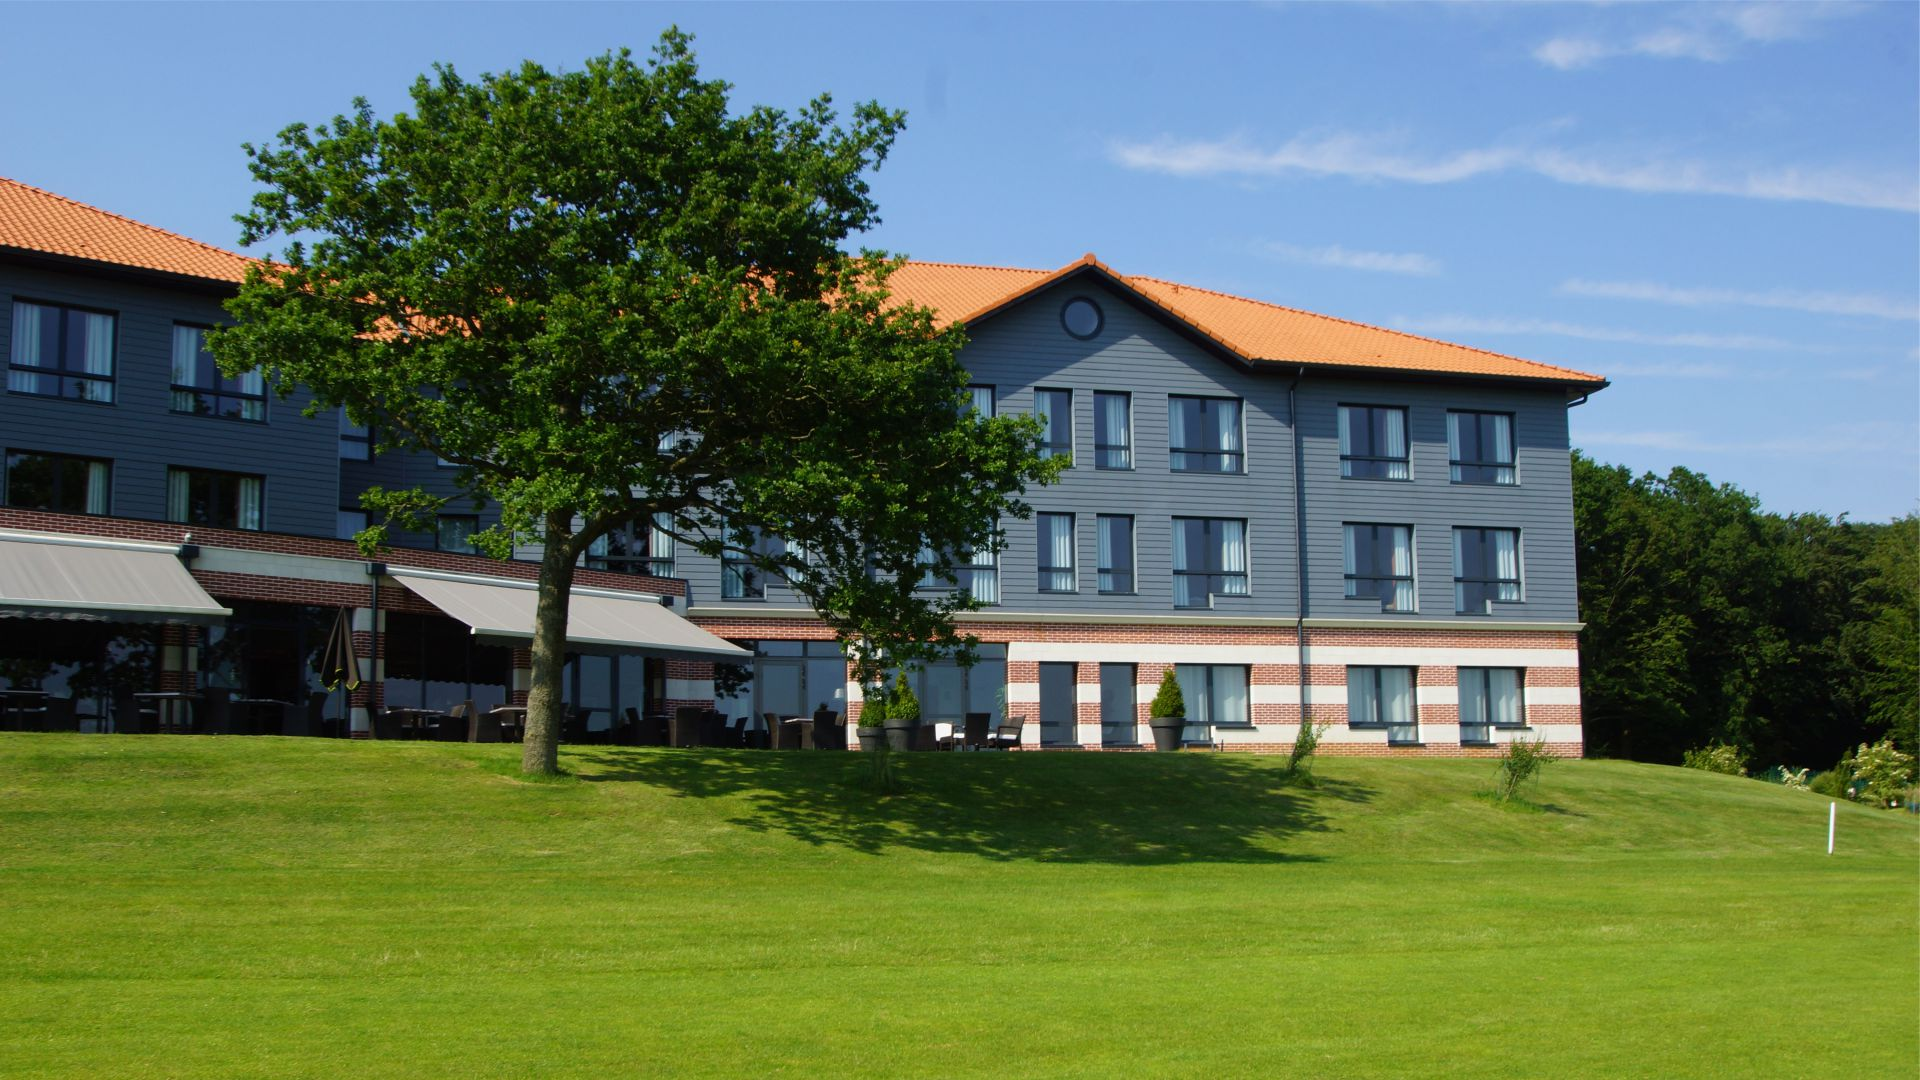 Saint Omer Hotel Du Golf